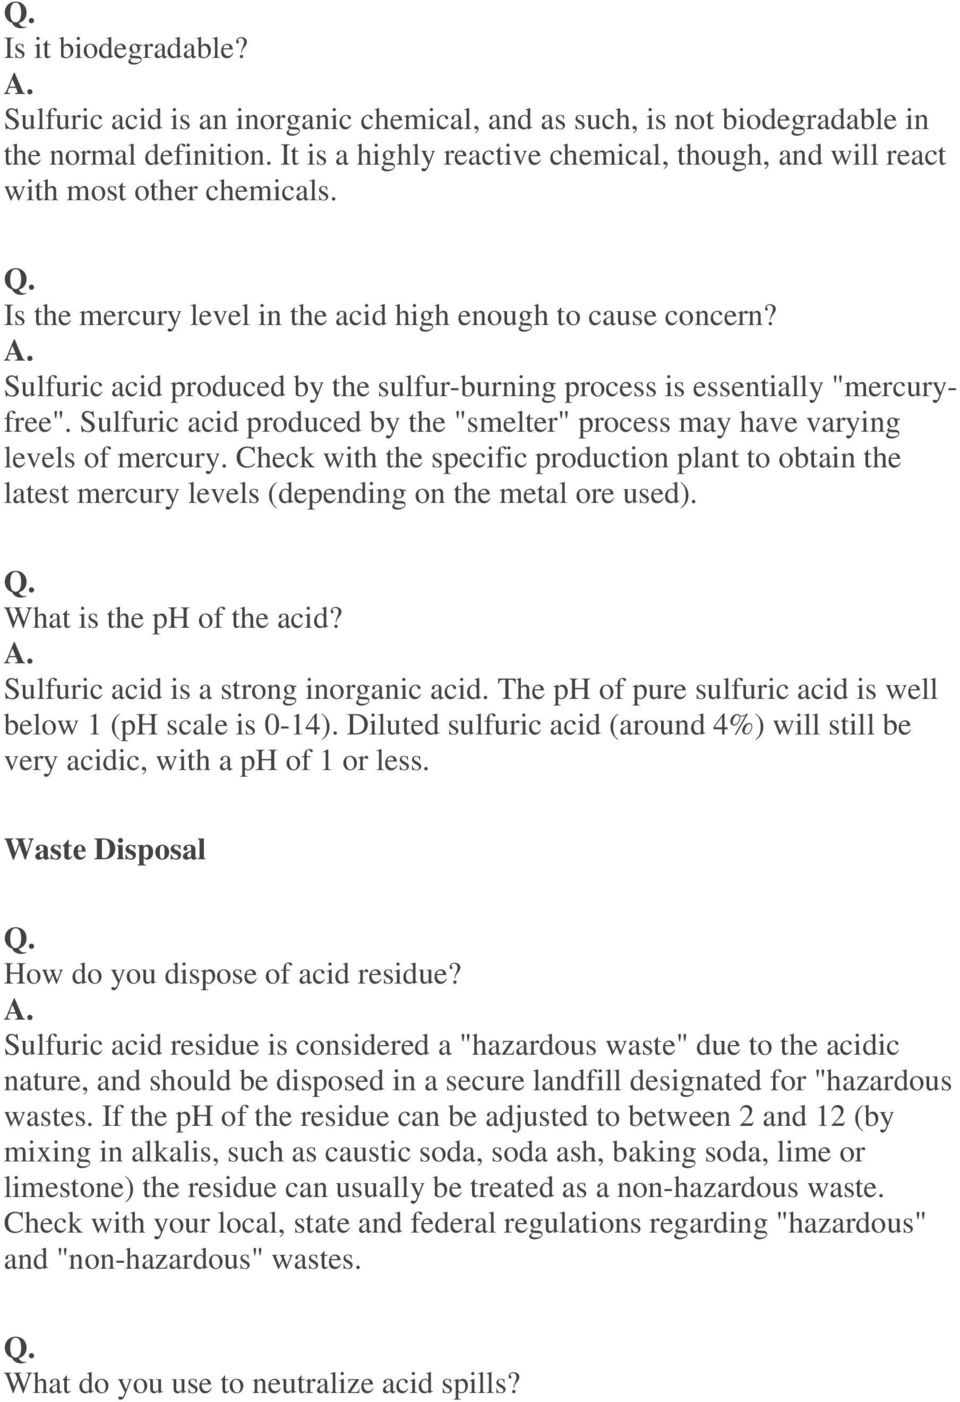 "Sulfuric acid produced by the sulfur-burning process is essentially ""mercuryfree"". Sulfuric acid produced by the ""smelter"" process may have varying levels of mercury."